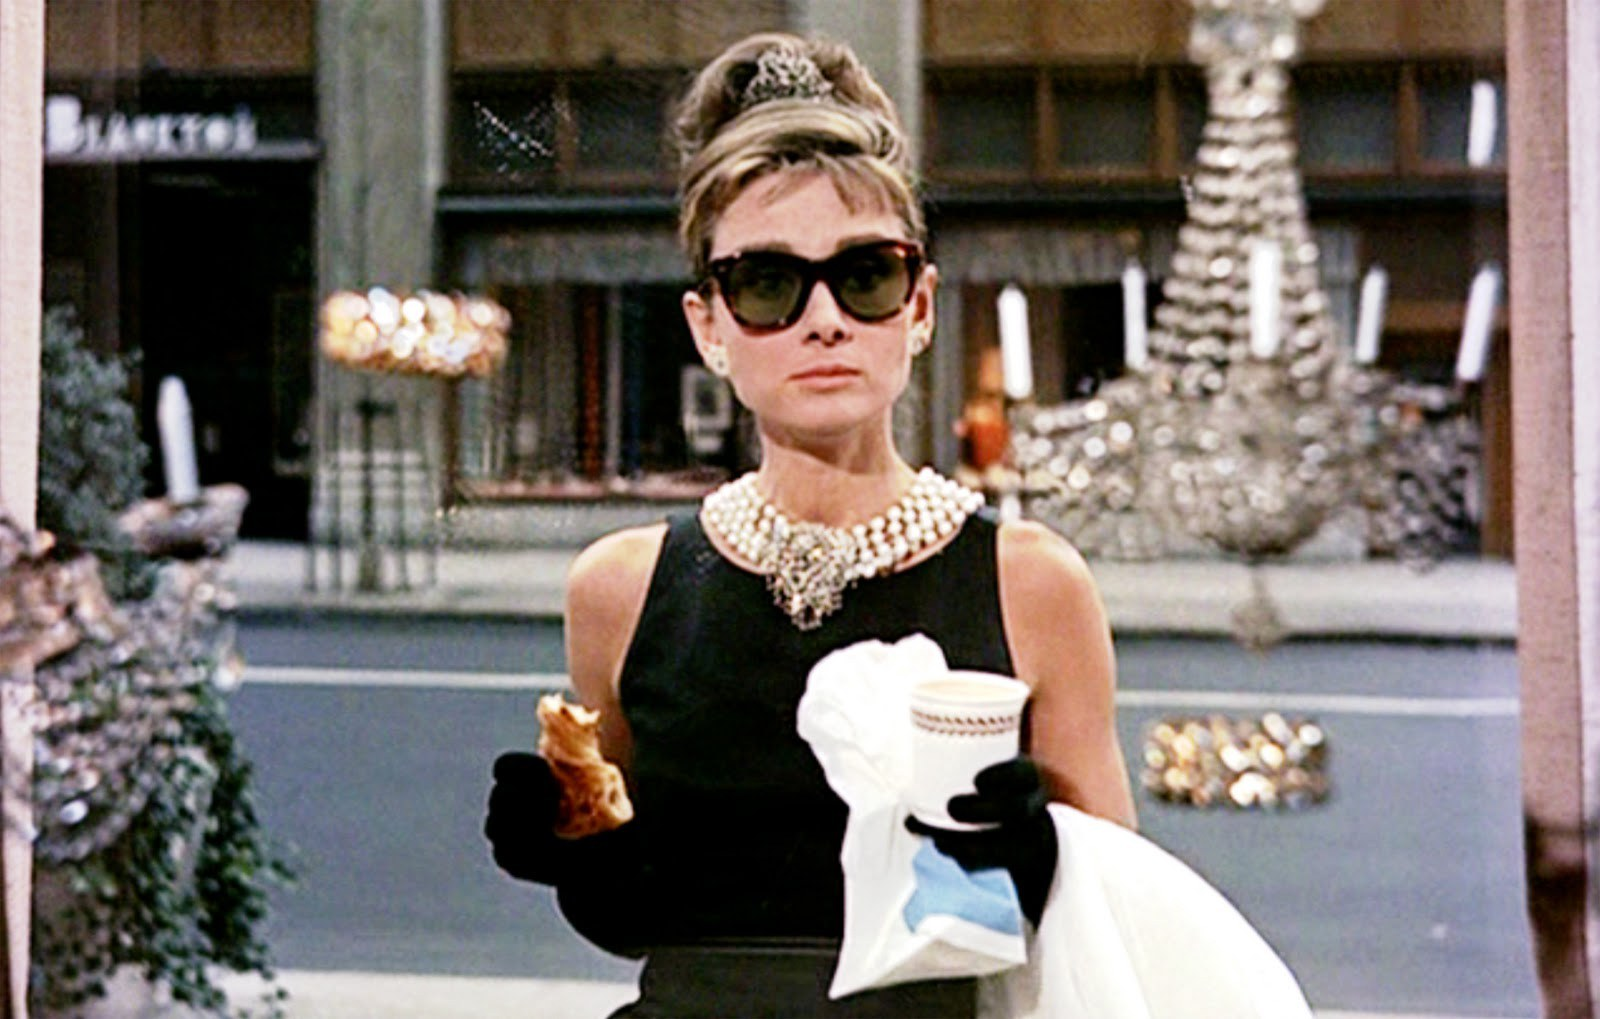 Breakfast At Tiffany's is Released - October 5th, 1961